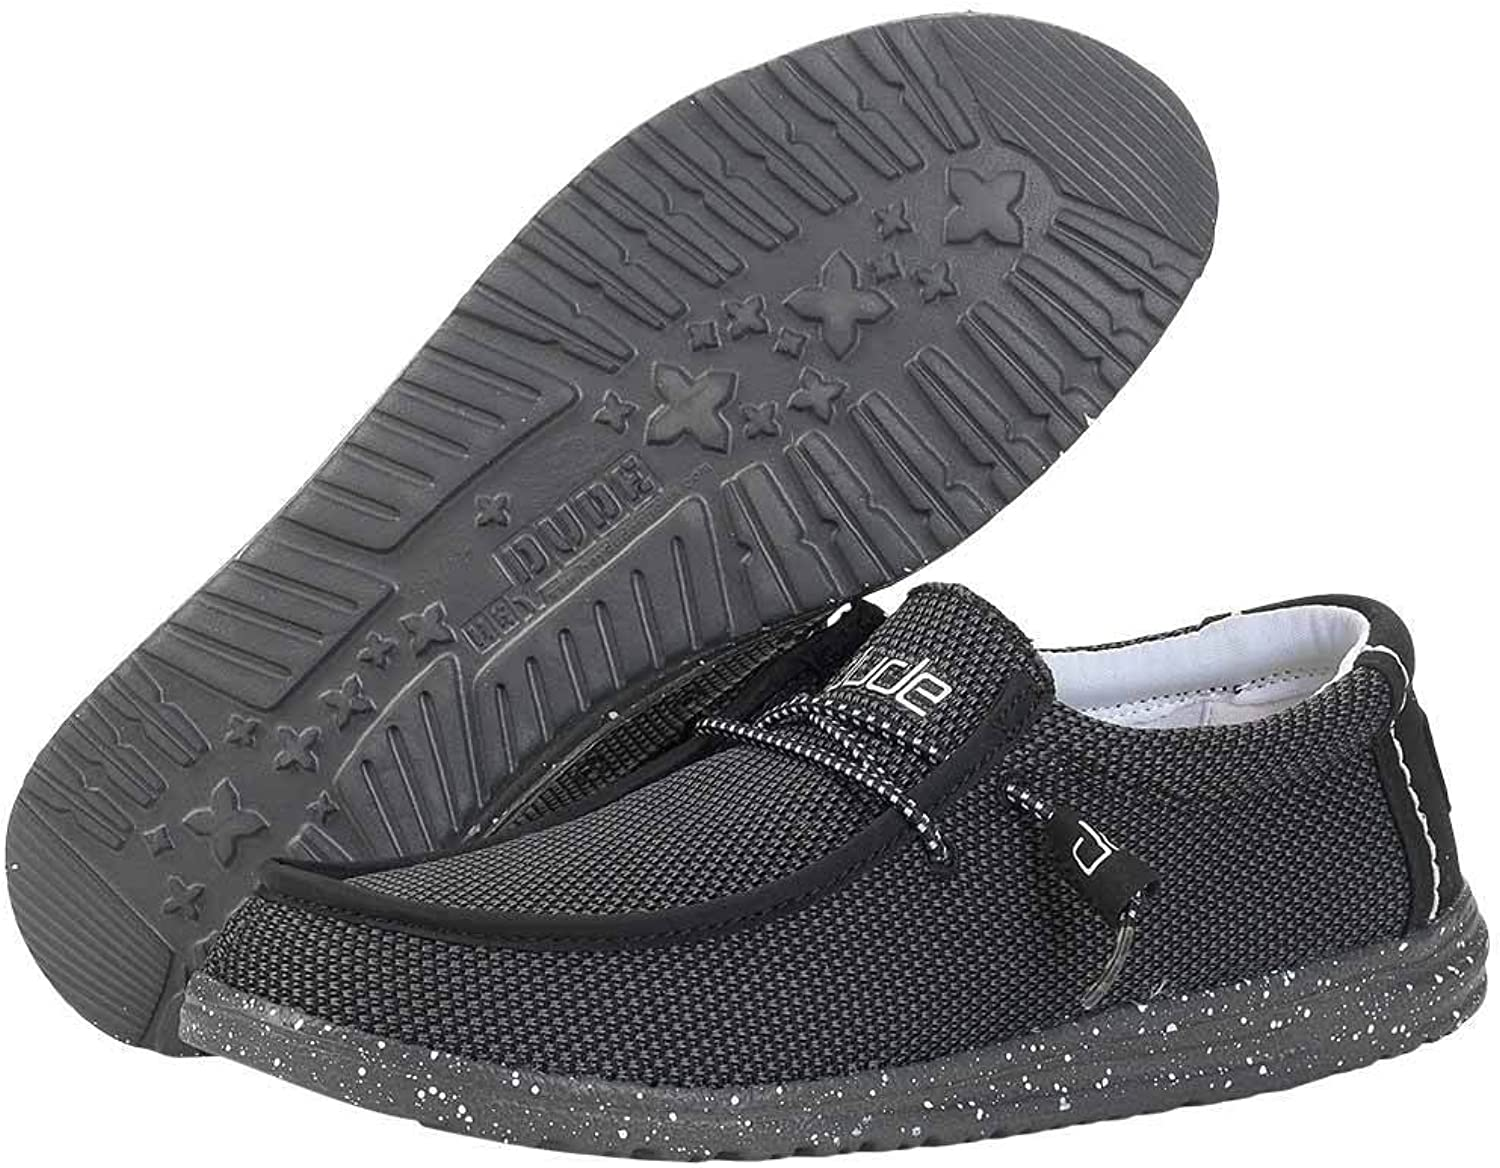 HEY DUDE WALLY SOX KNIT CASUAL LACE UP SHOES Black 7